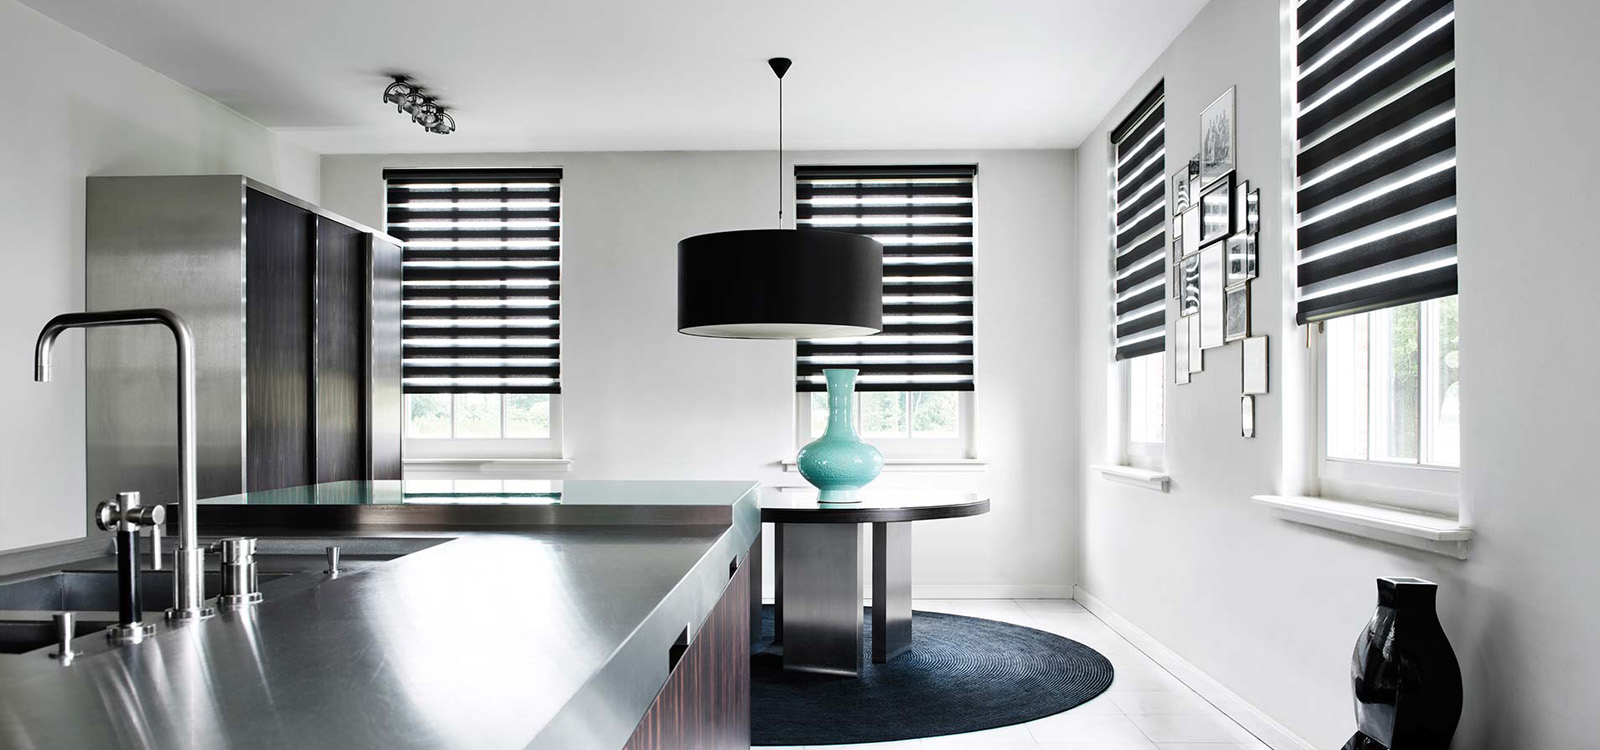 Century Array Shades Zblinds